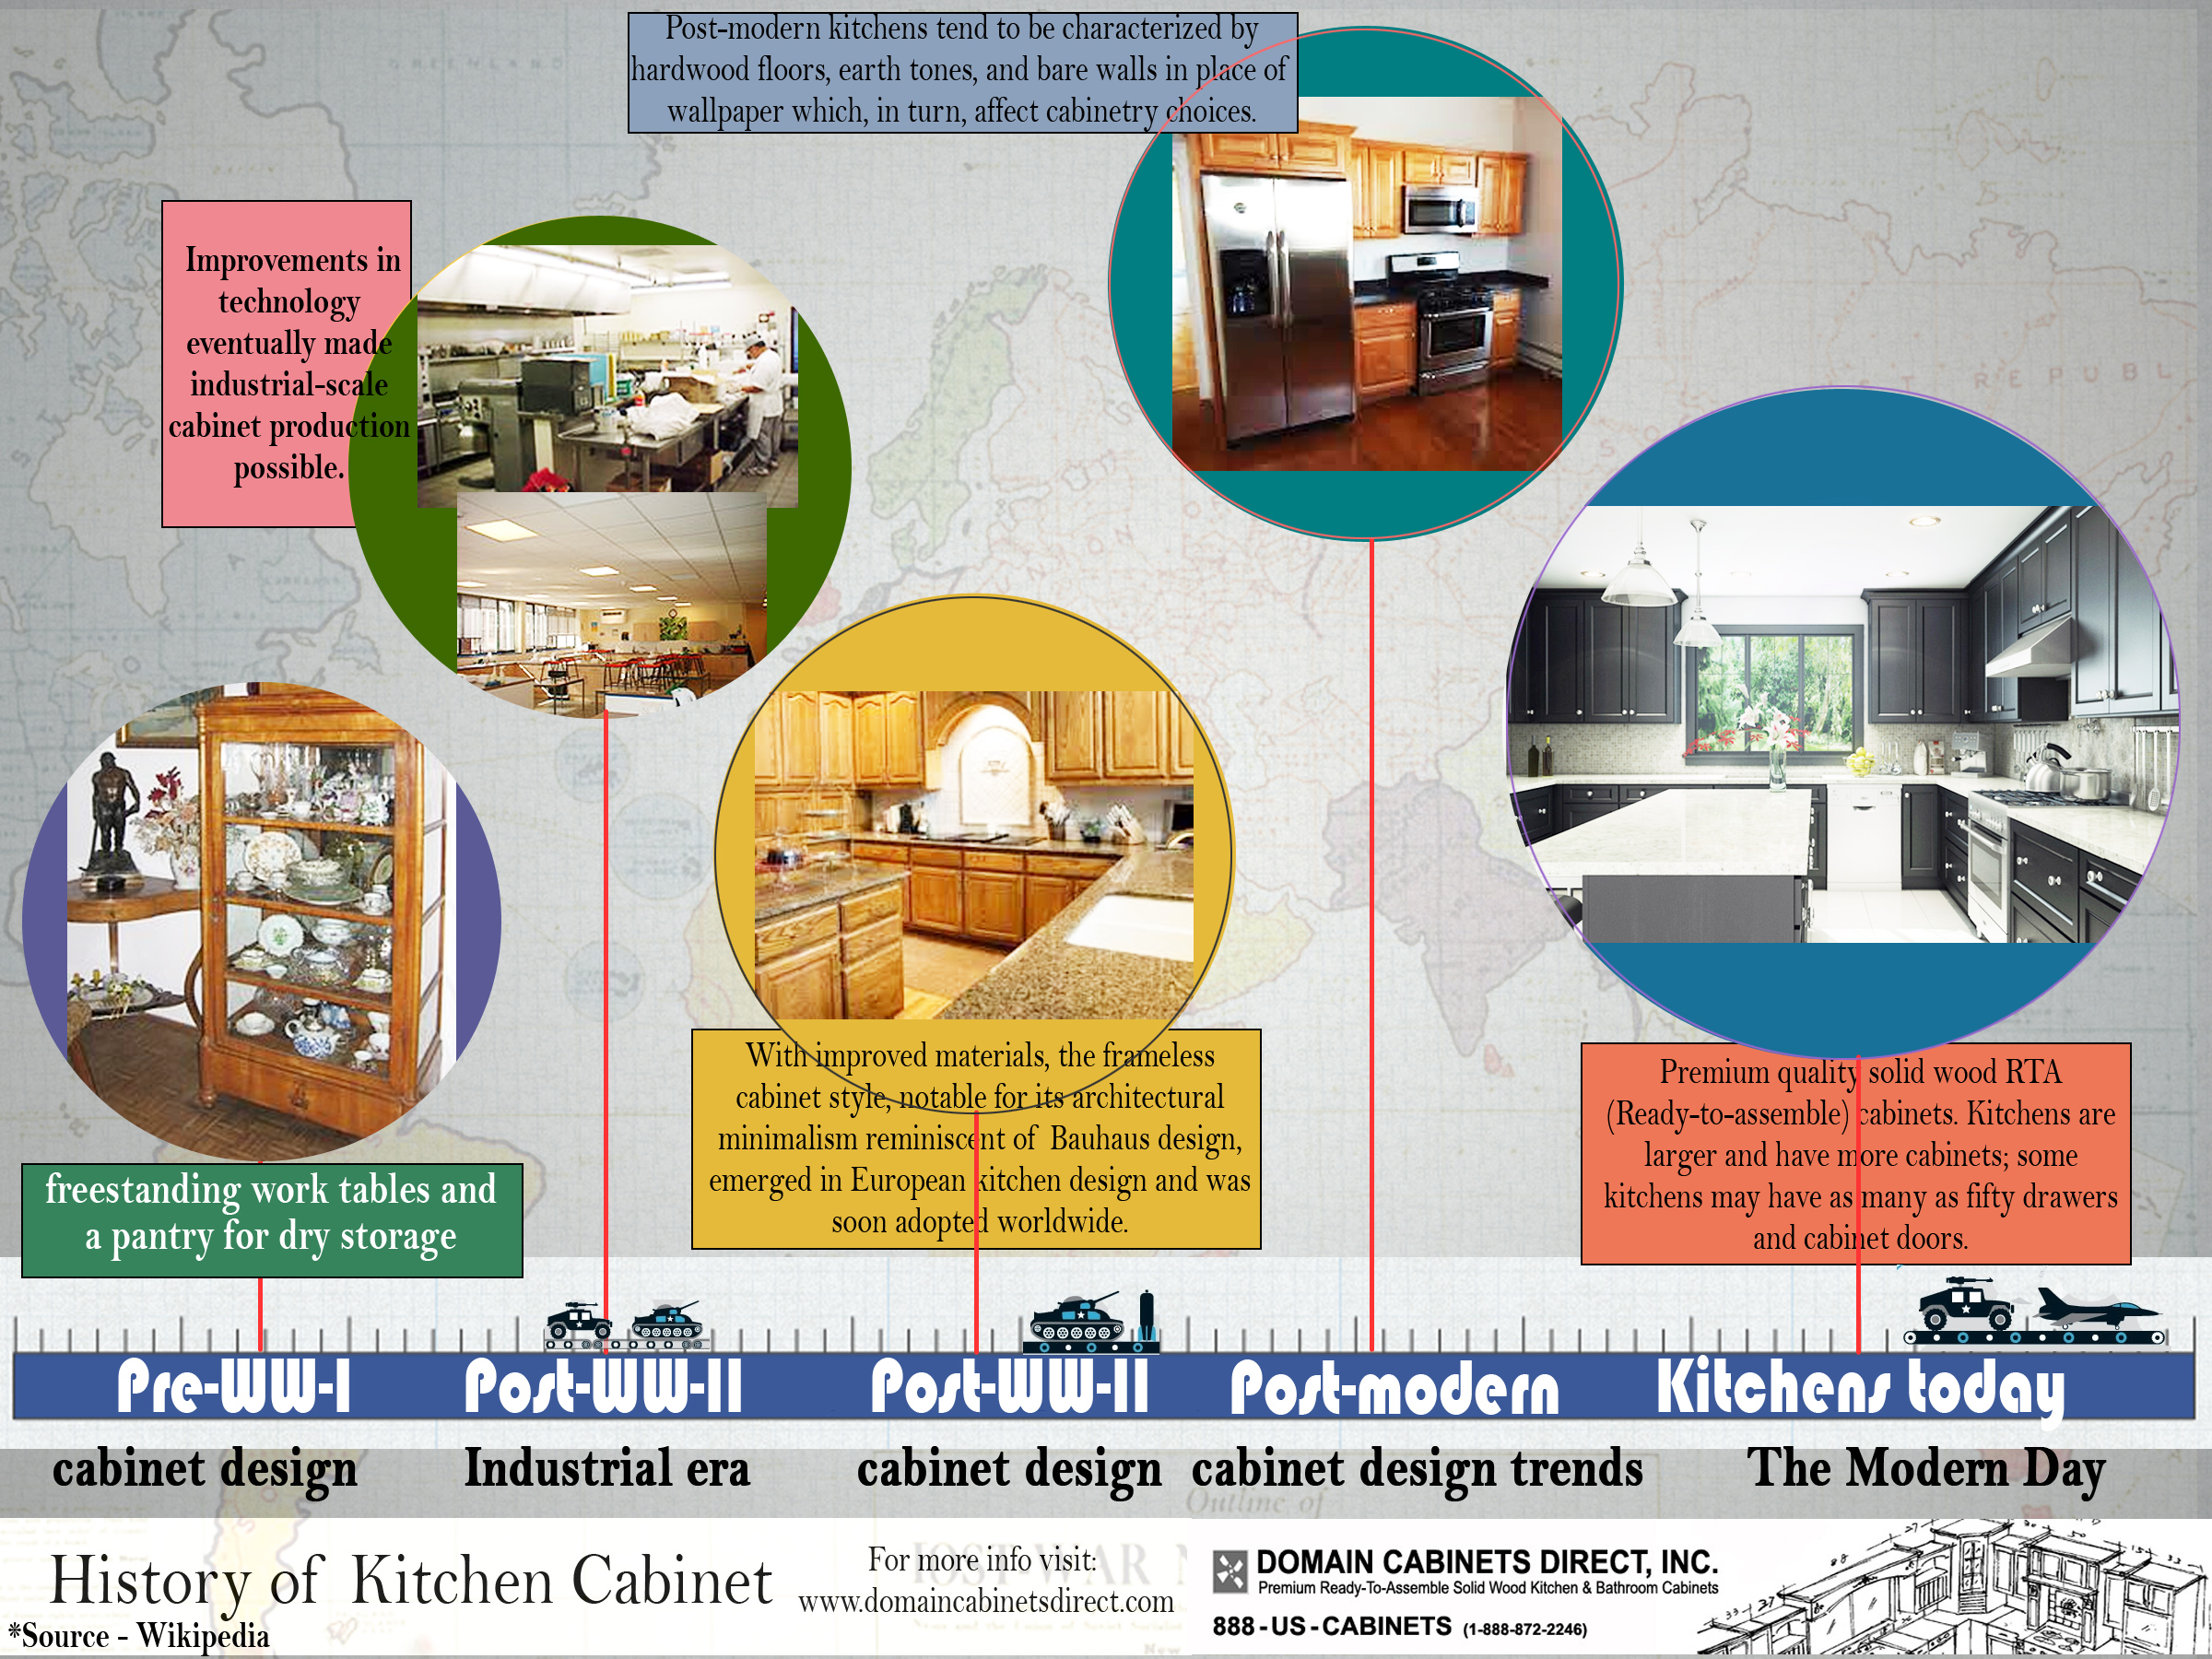 history of kitchen cabinets | visual.ly